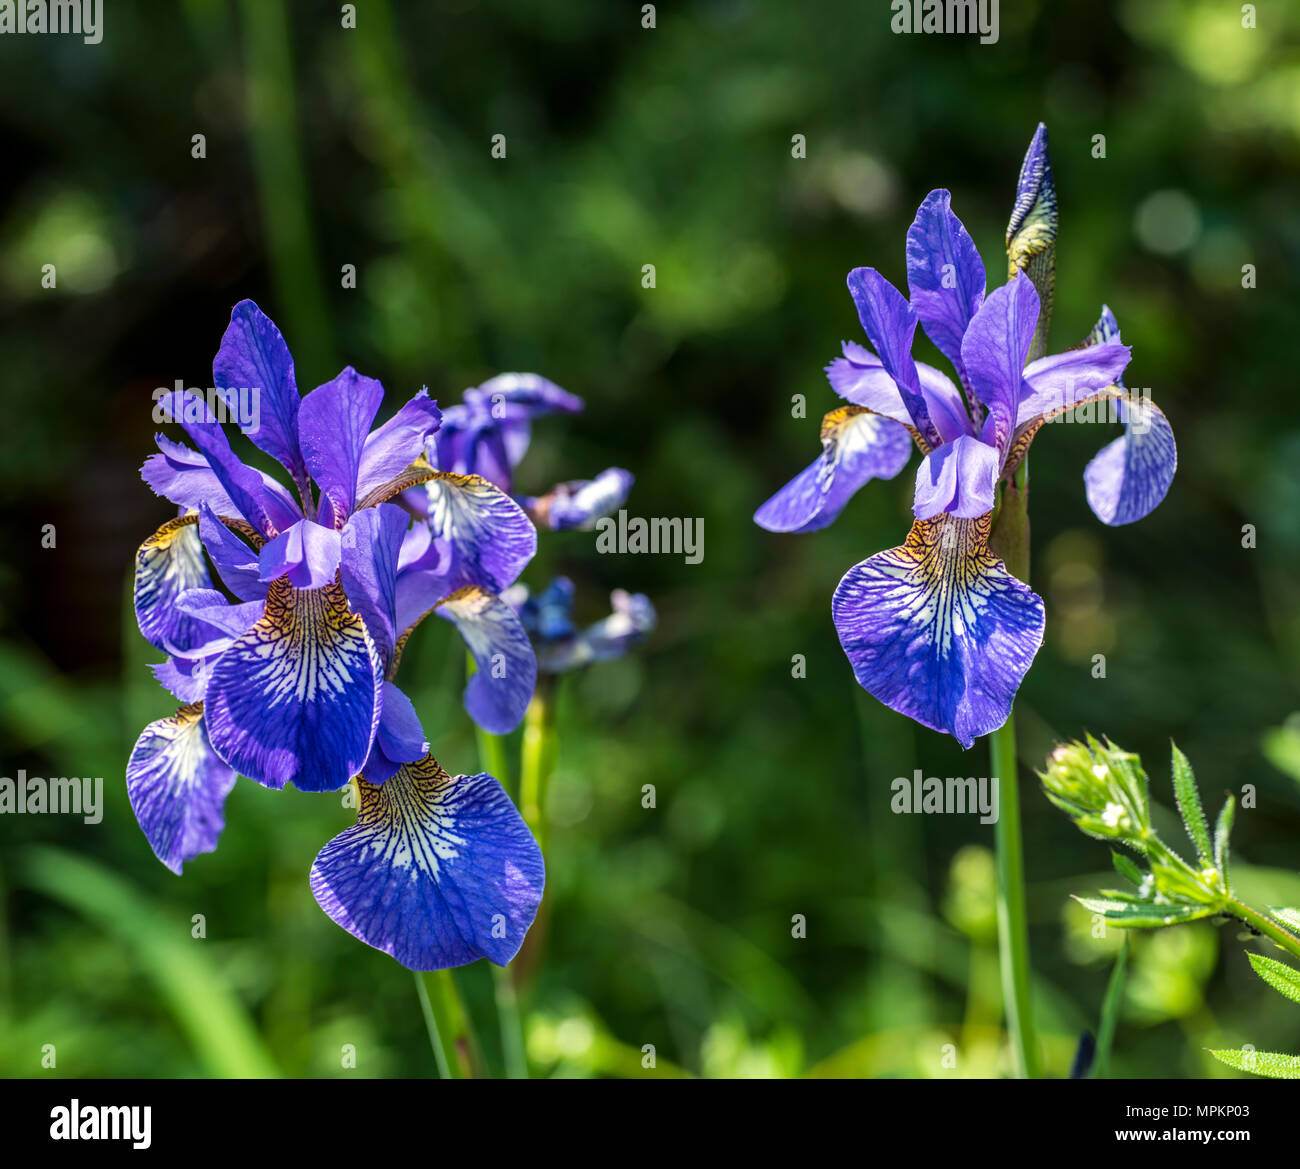 Flower Poster Close Up Of Blue And Purple Iris Flowers In Bright